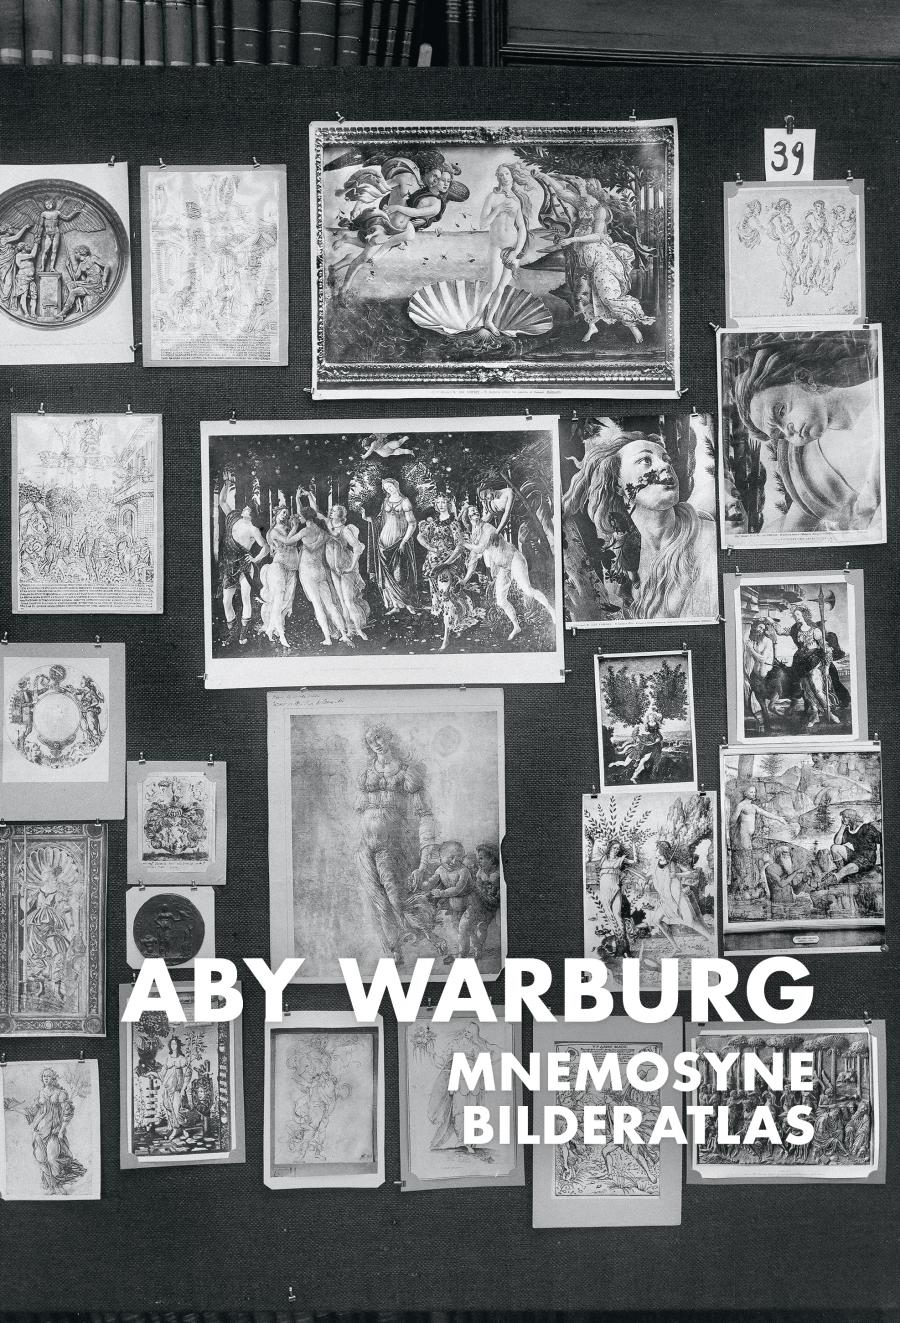 Historical photograph of Aby Warburg's image panels at the Hamburg library